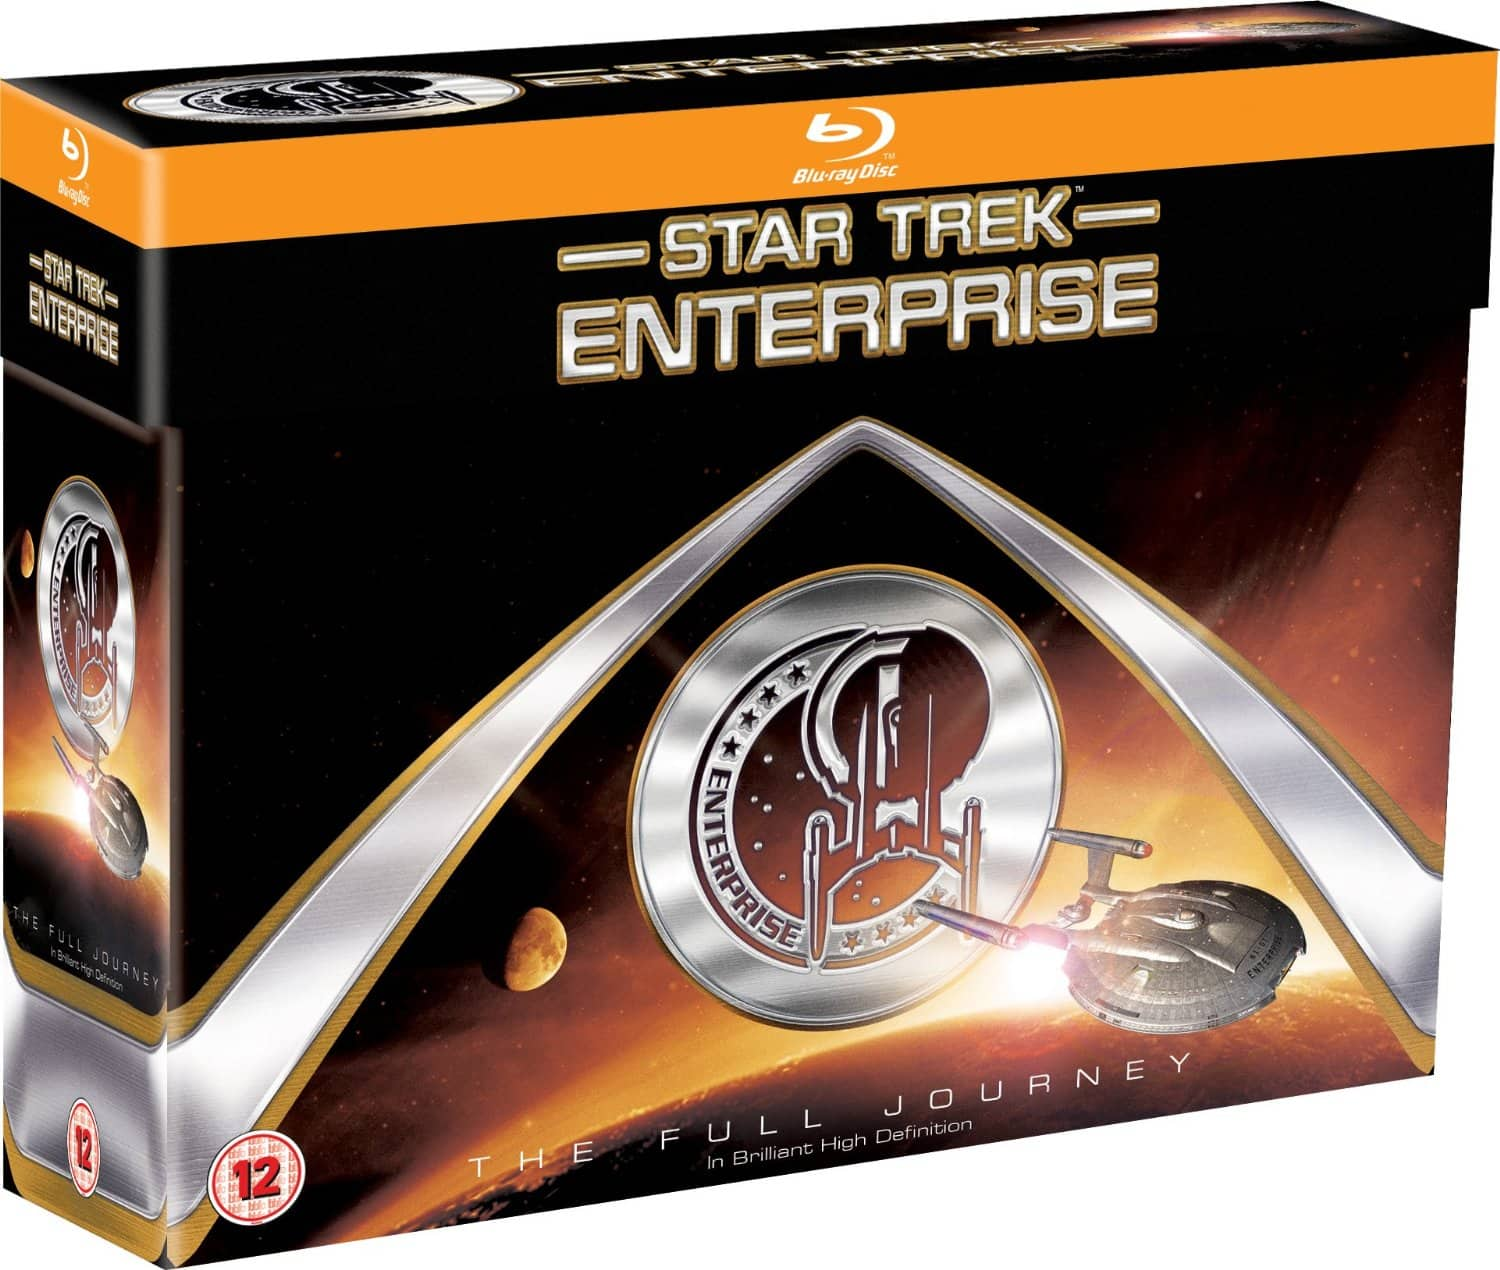 Star Trek: Enterprise: The Full Journey (Region Free Blu-ray)  $62